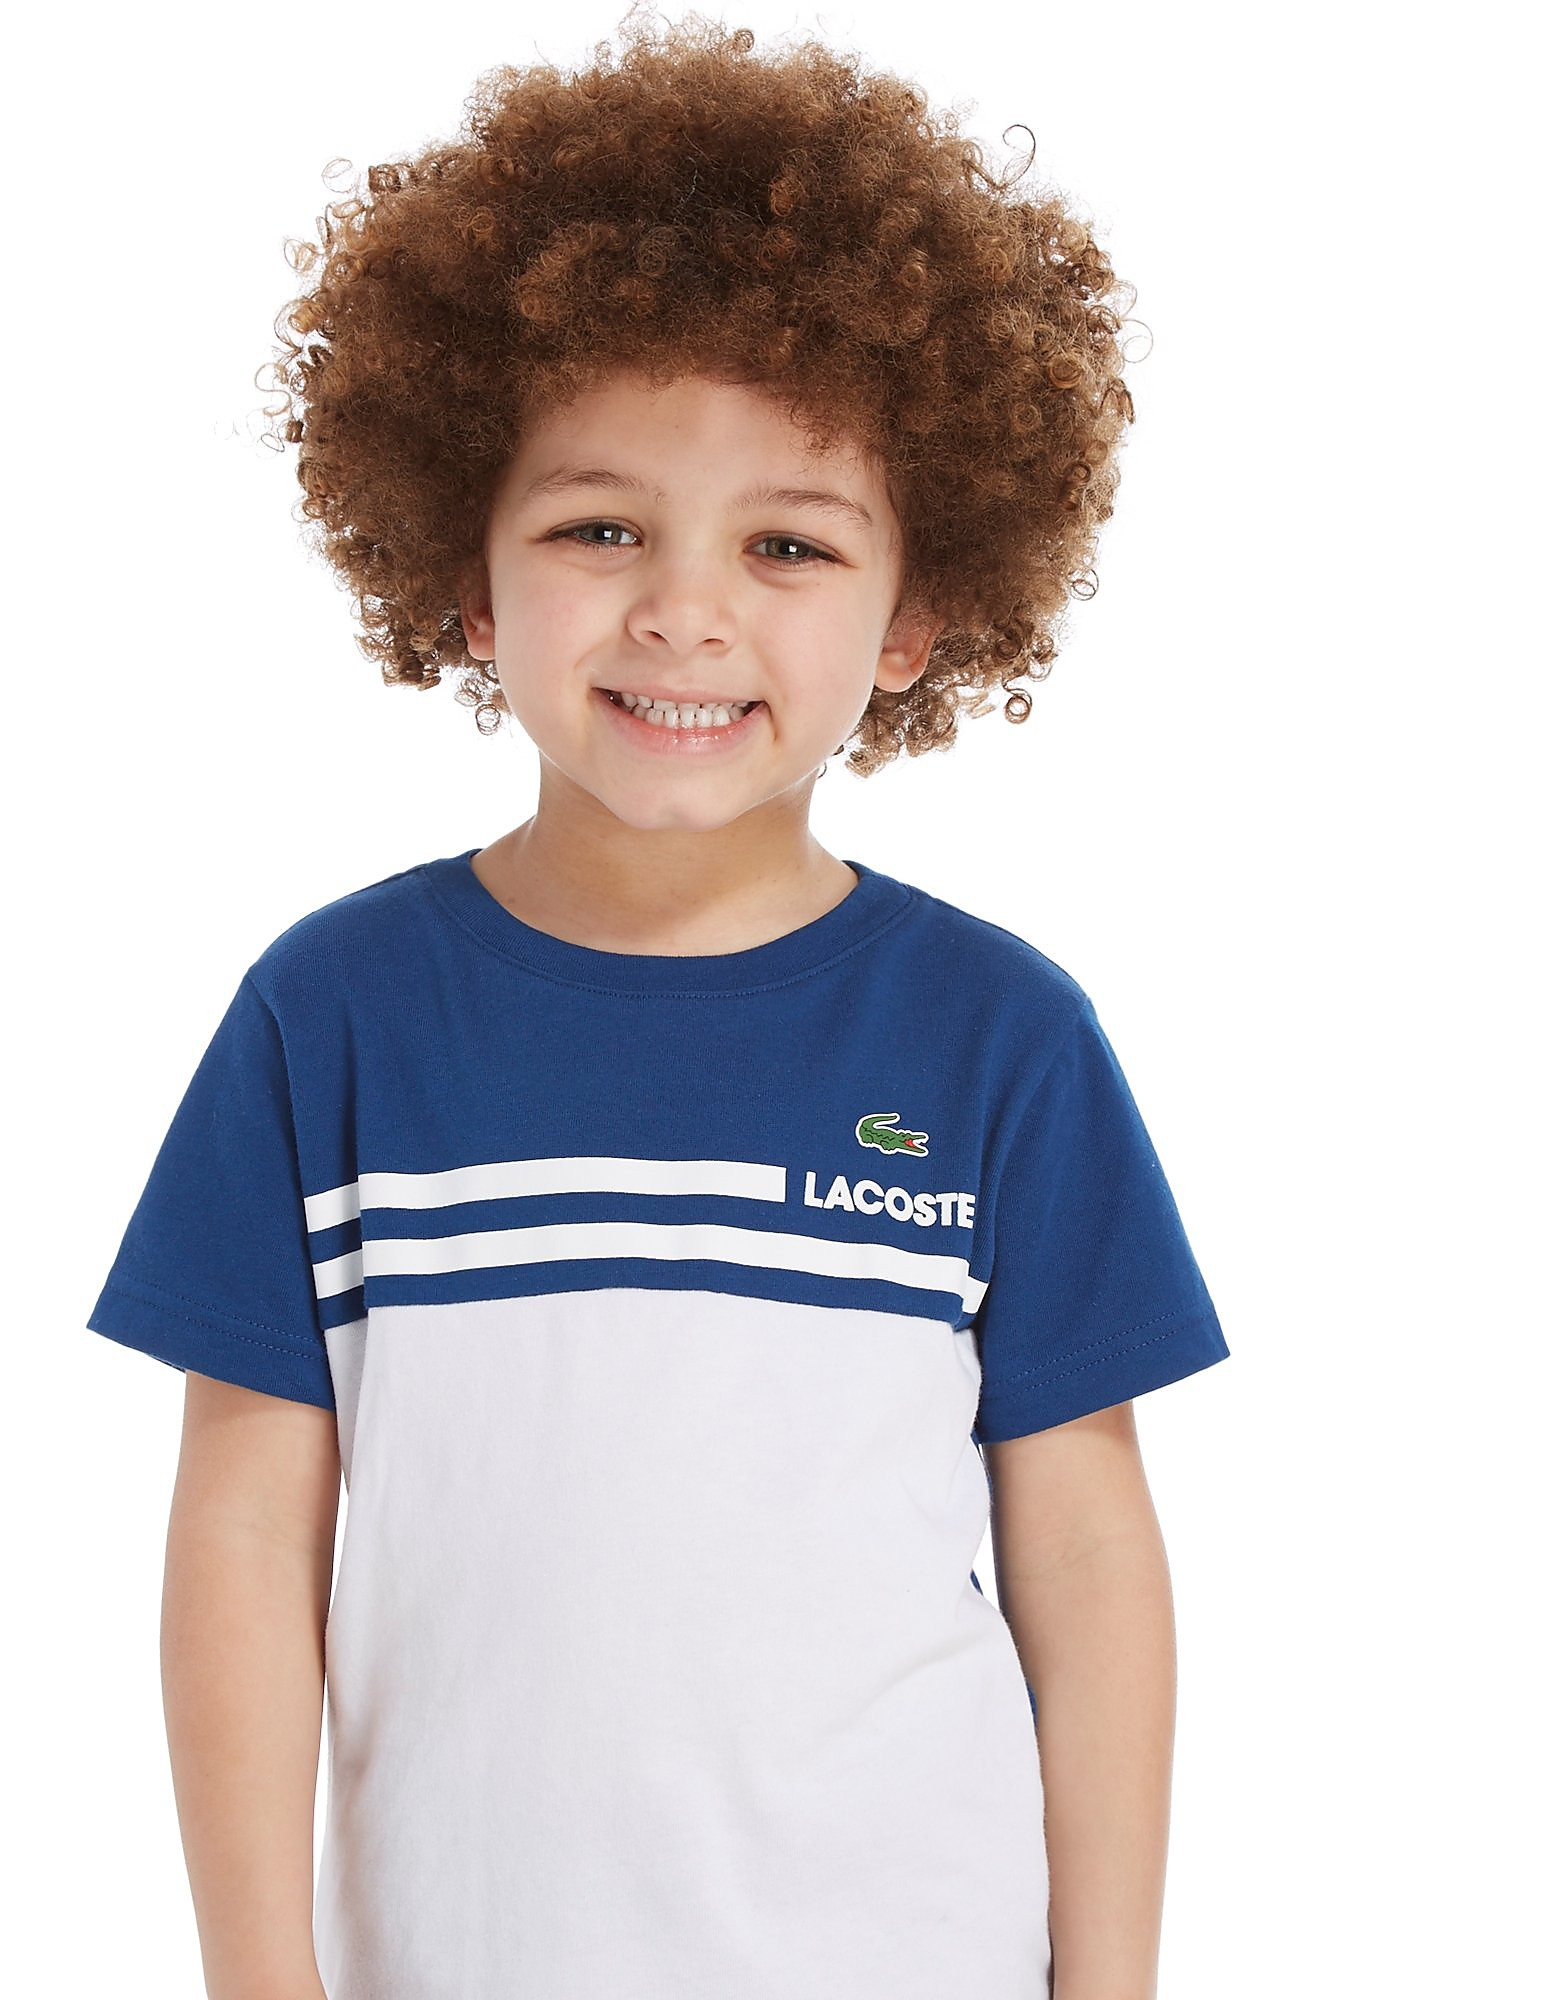 Lacoste Colourblock T-Shirt Children